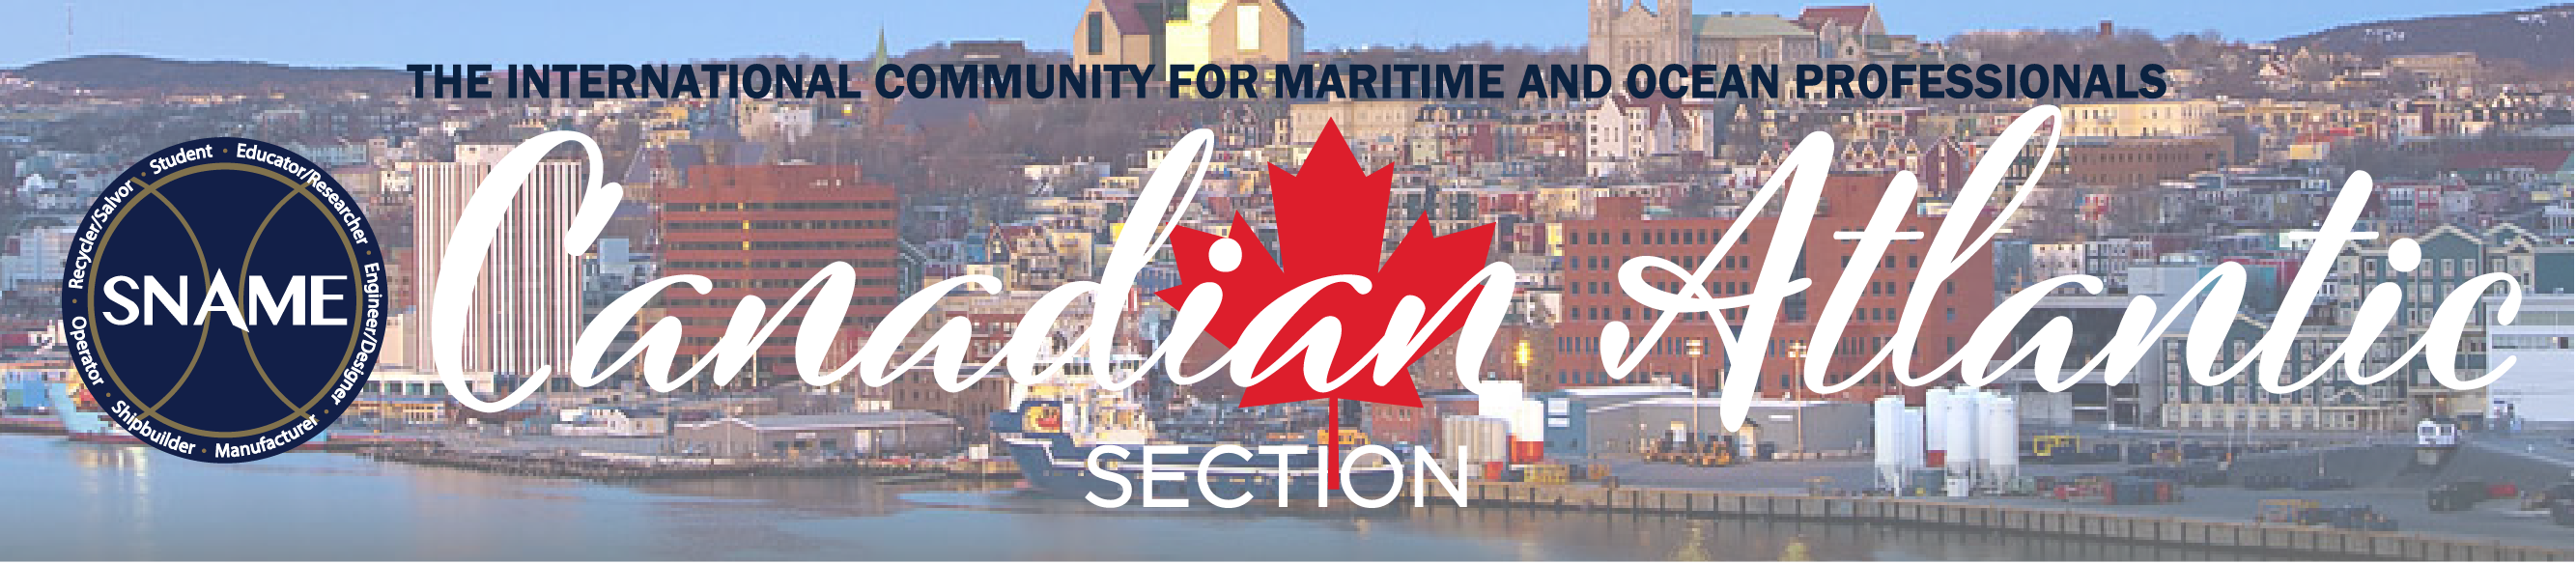 CanadianAtlanticSection